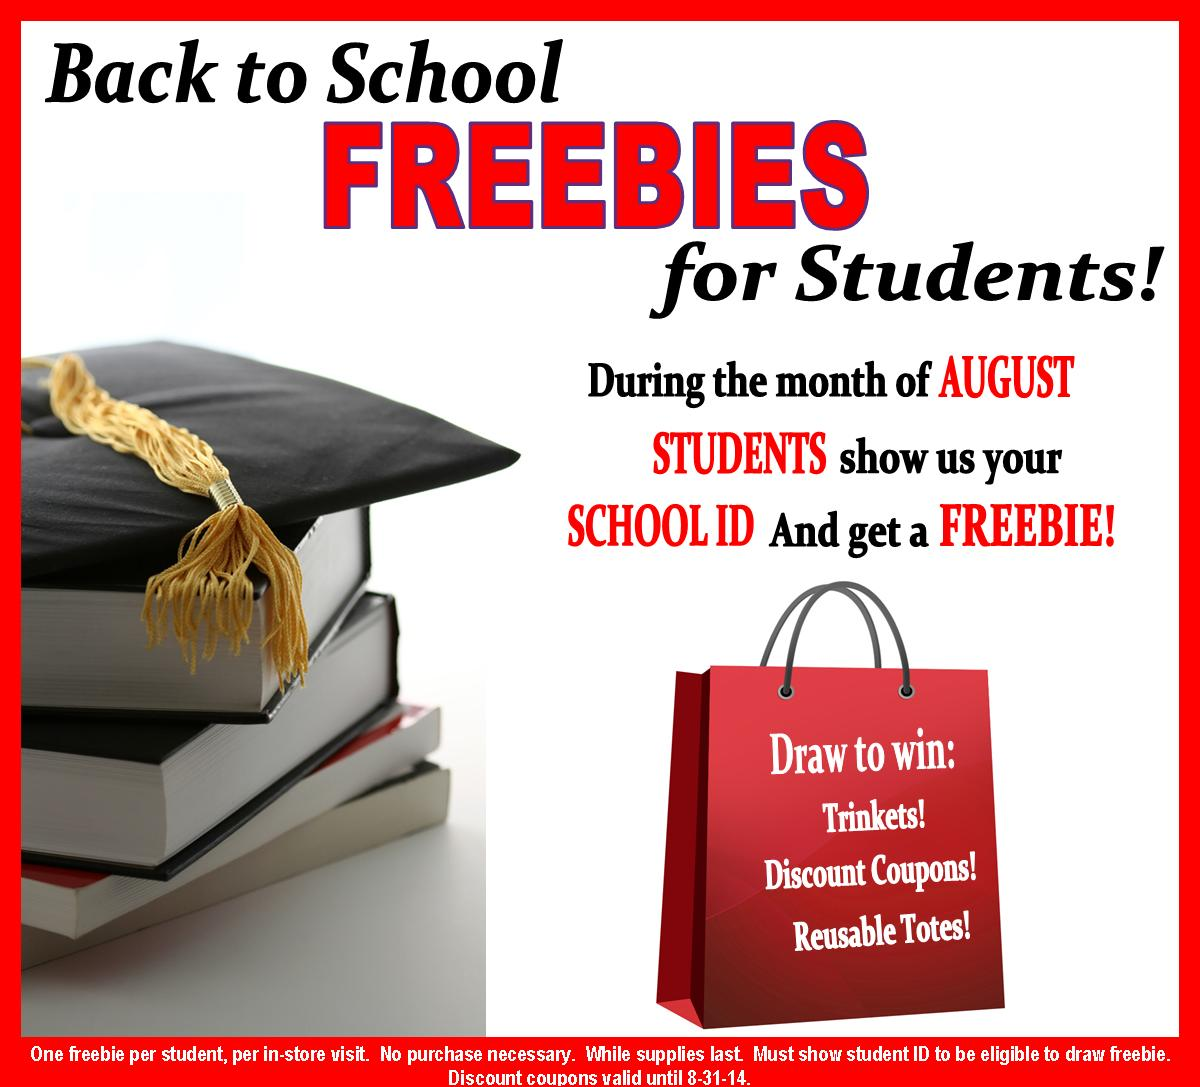 Back to School Freebies for Students